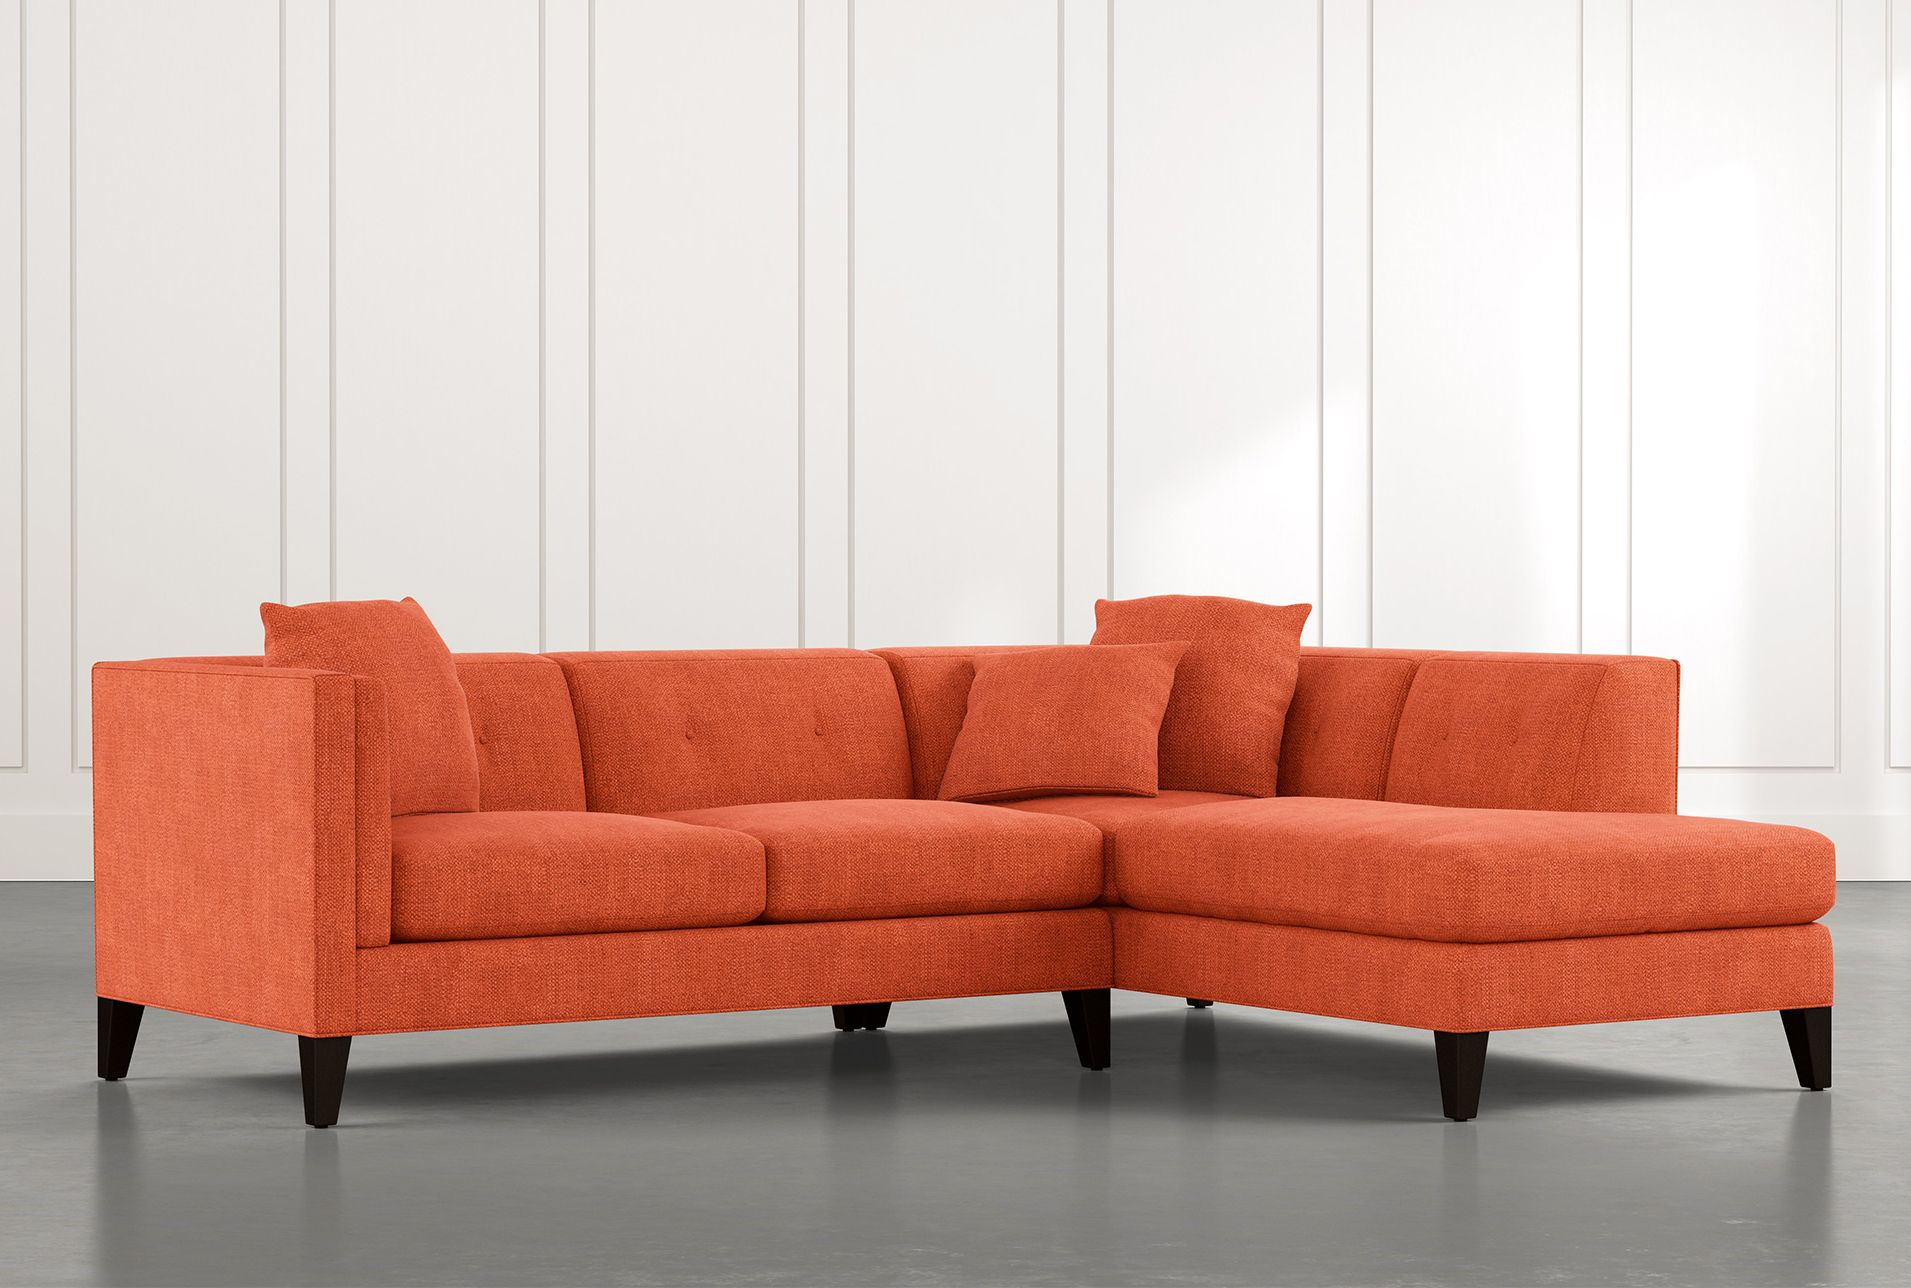 Avery Ii Orange 2 Piece Sectional Sofa With Right Arm Pertaining To Avery 2 Piece Sectionals With Laf Armless Chaise (View 7 of 15)